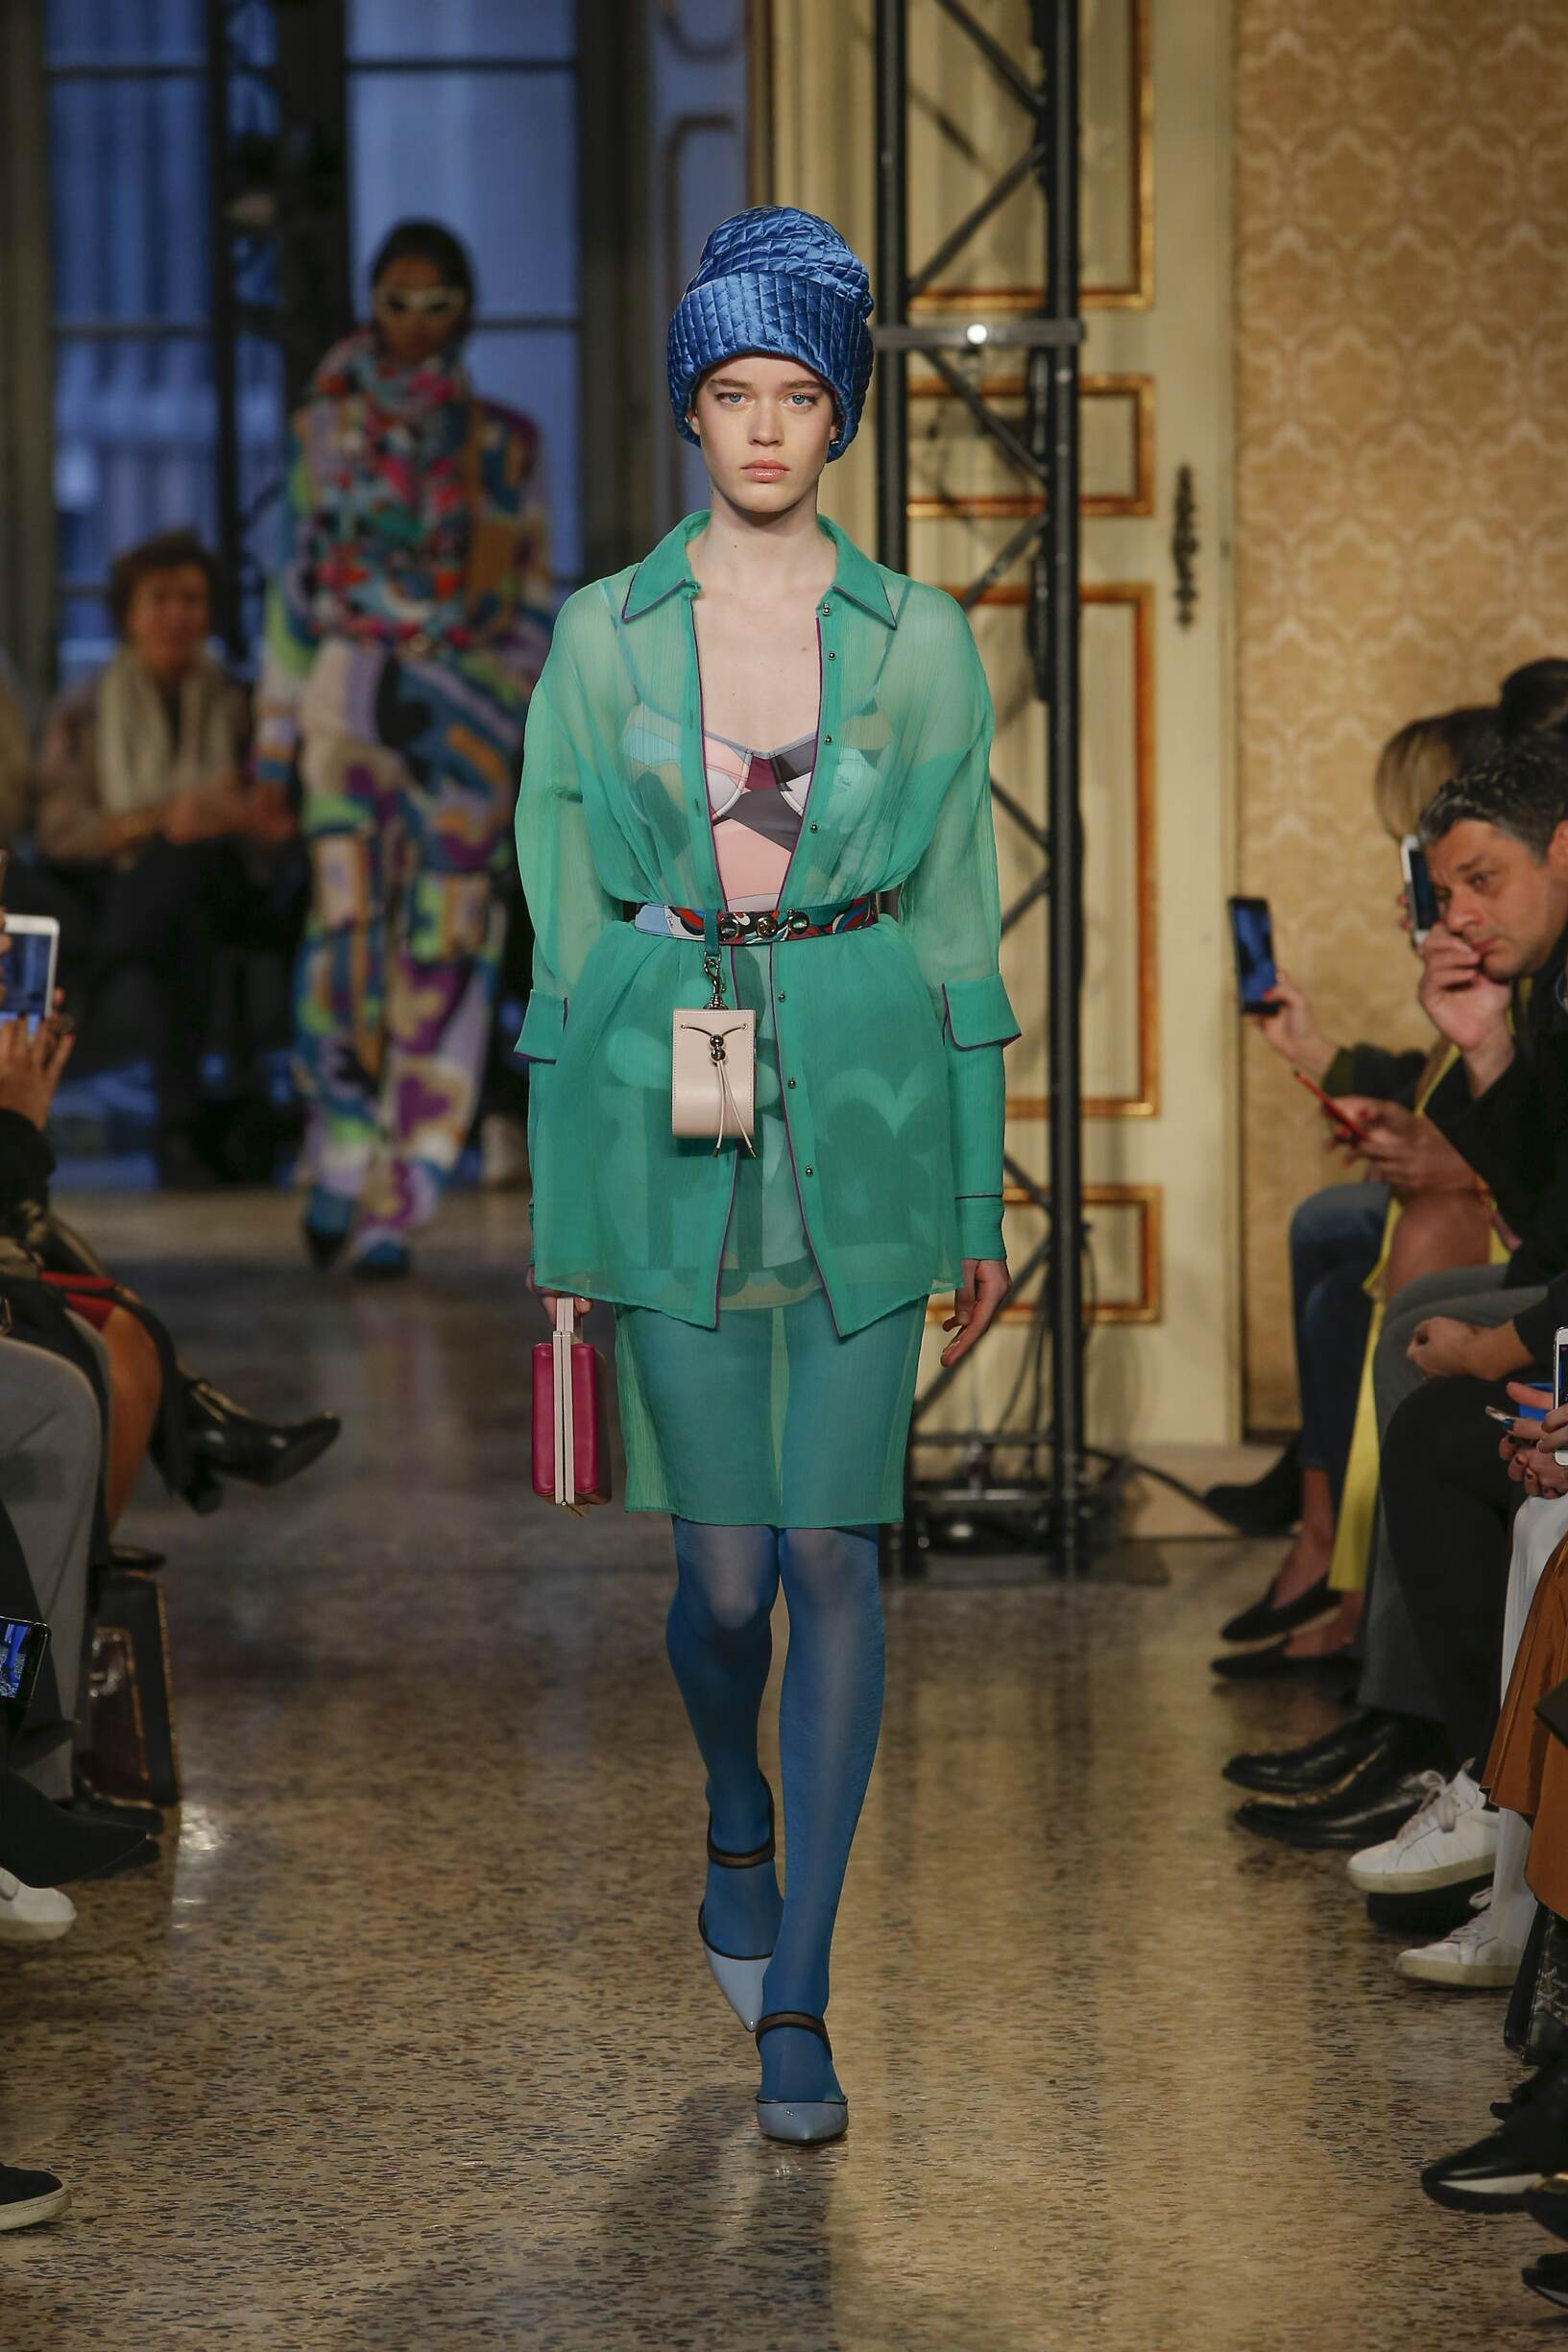 Emilio Pucci Women's Collection 2018